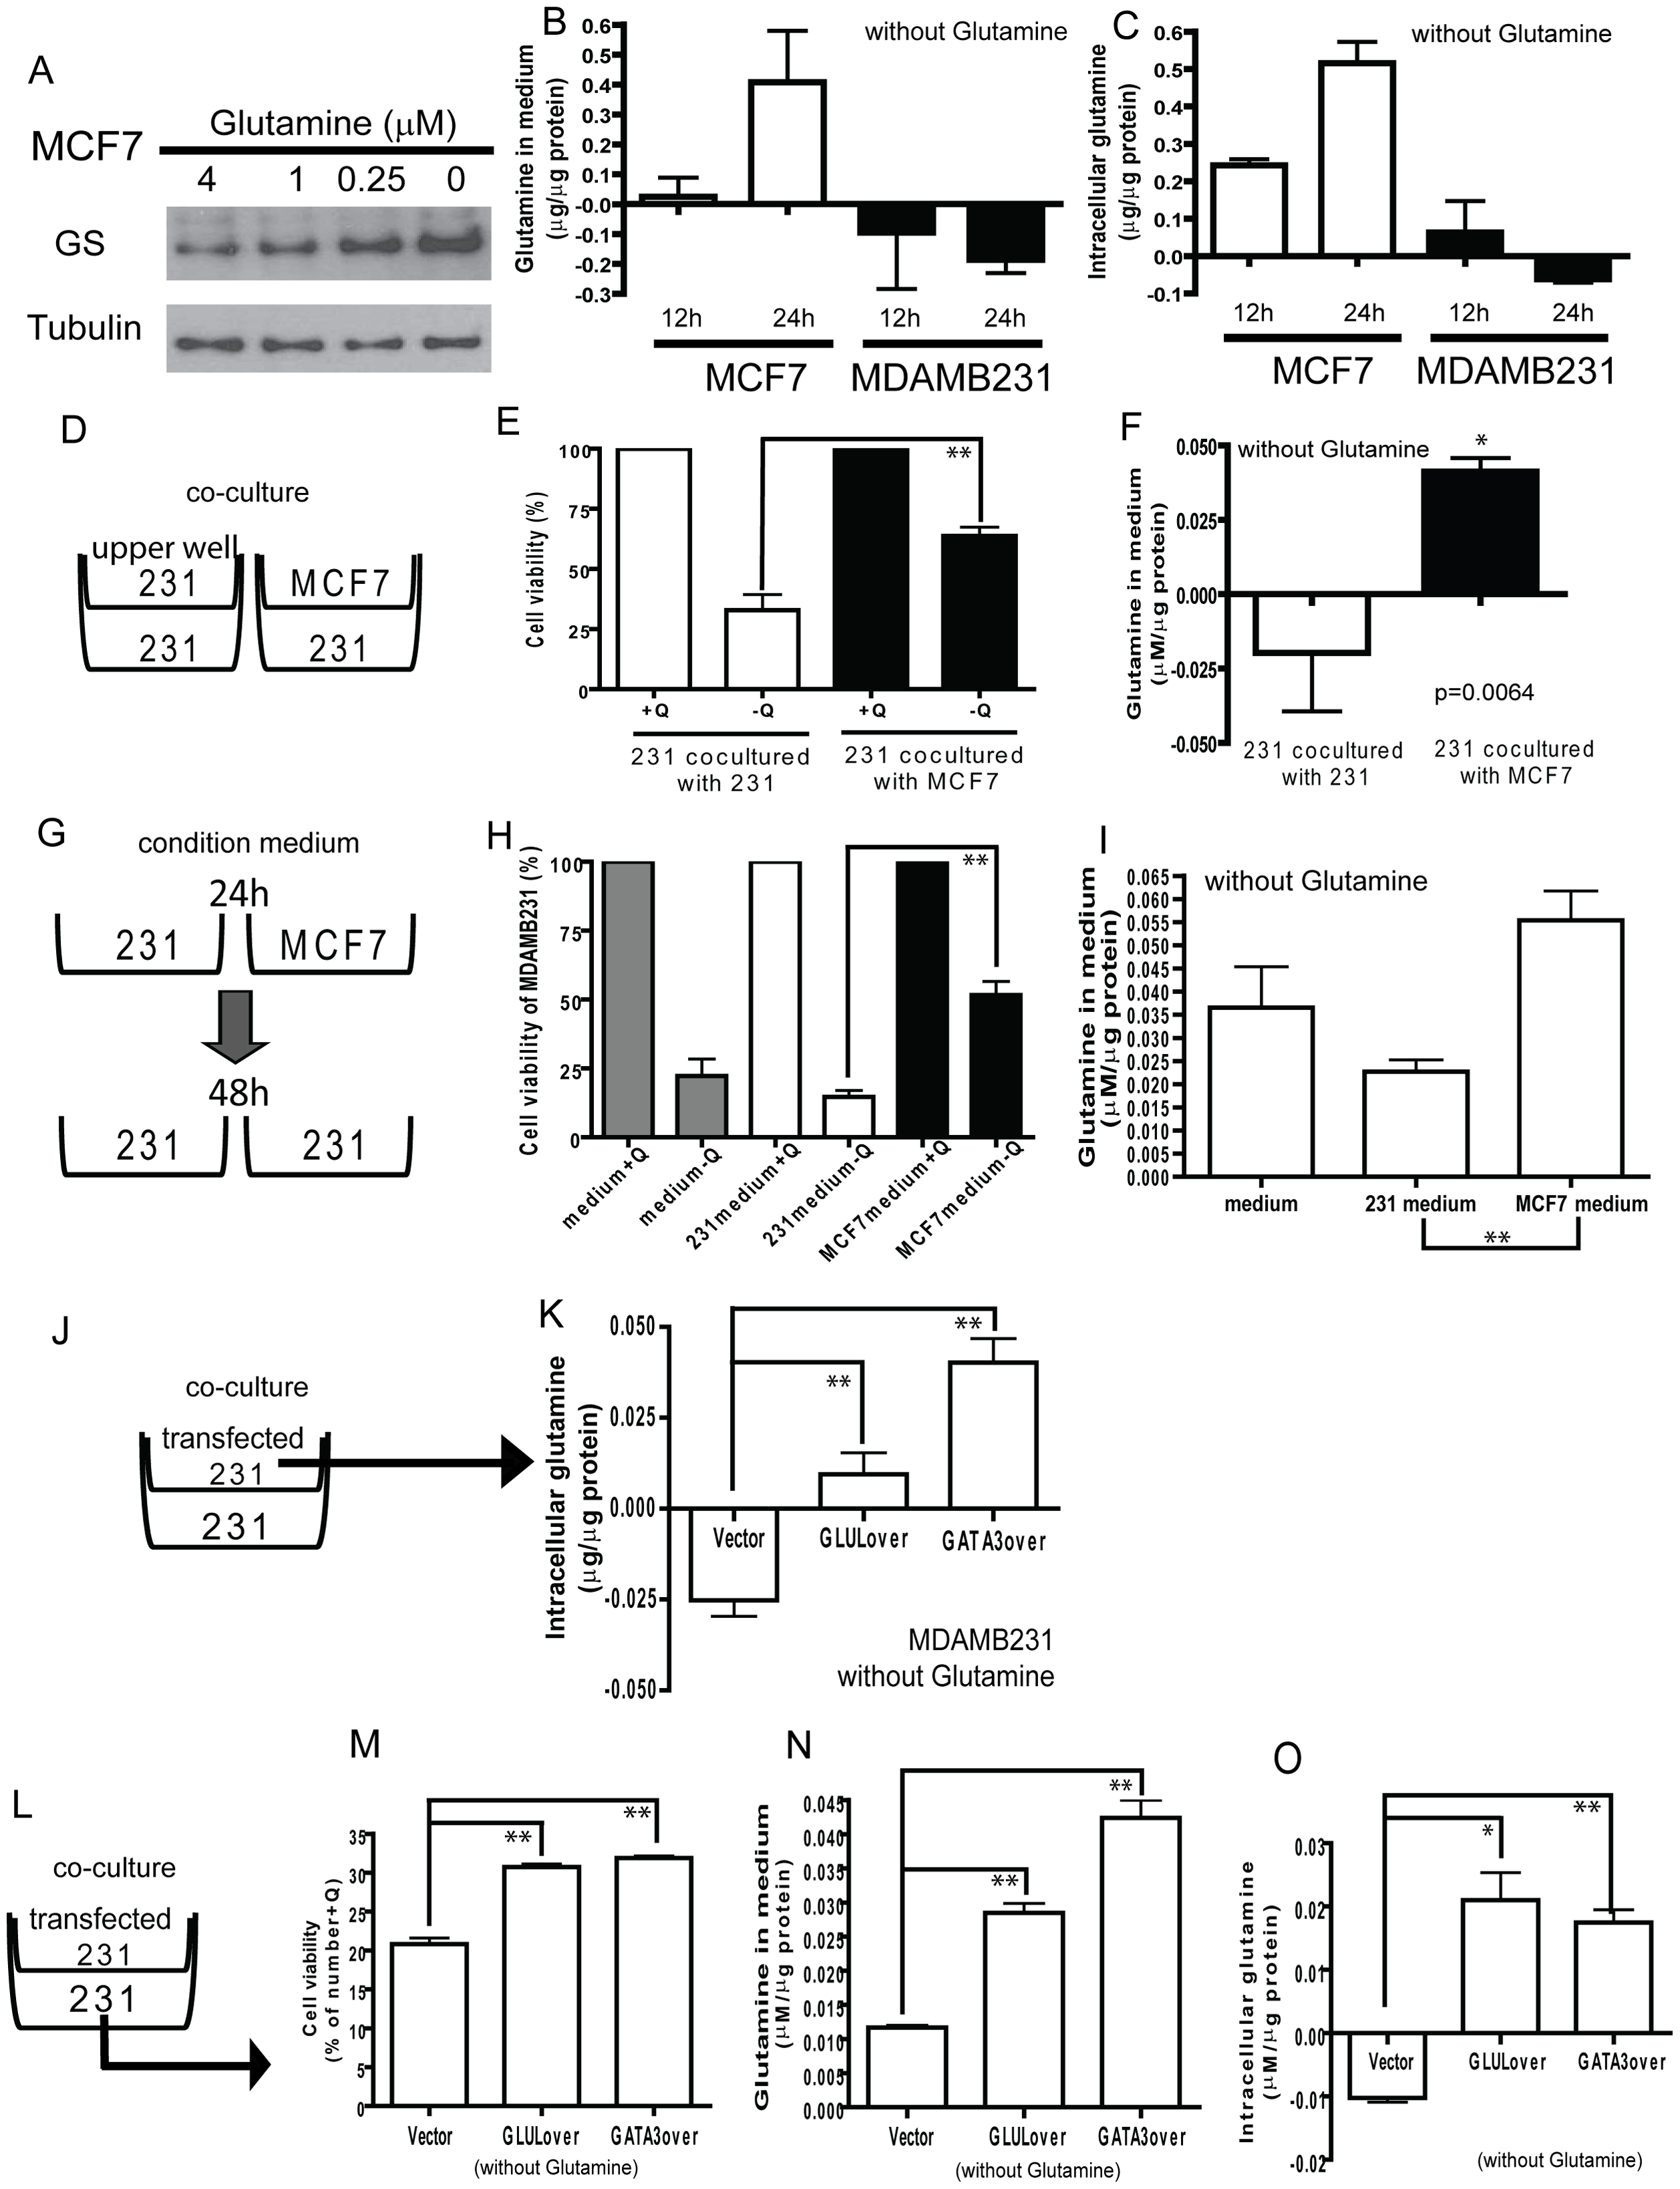 Potential for glutamine symbiosis between luminal and basal cells.